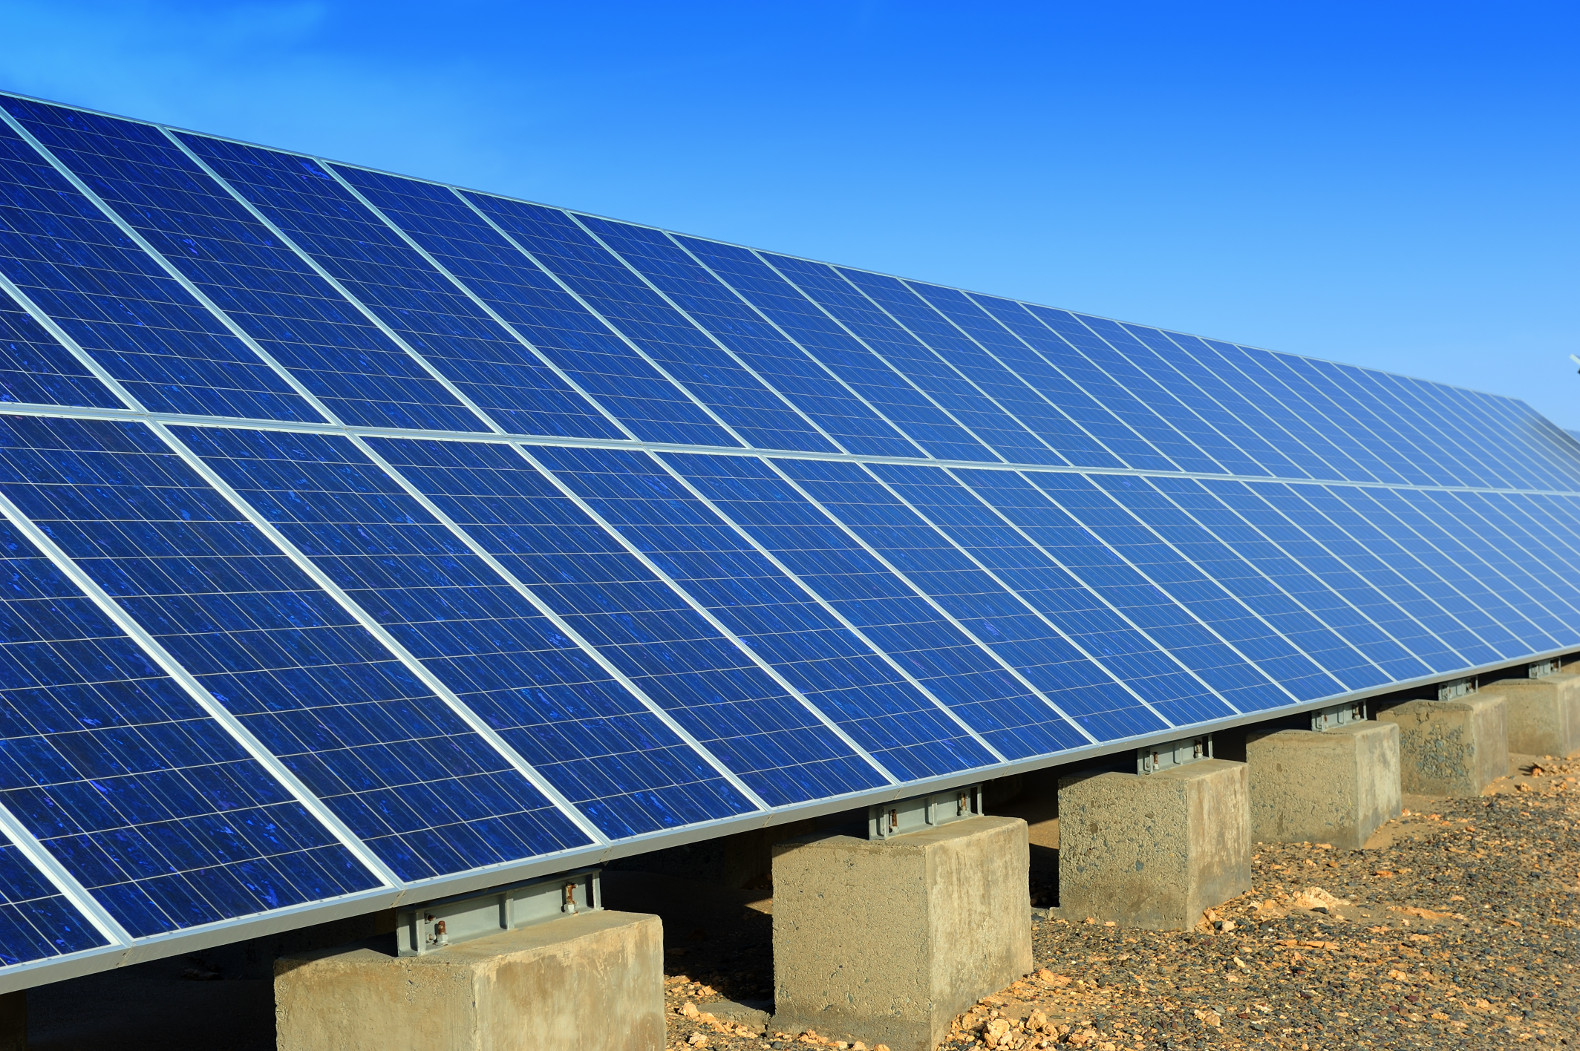 China plans to meet 2020 emissions goal by tripling solar power capacity